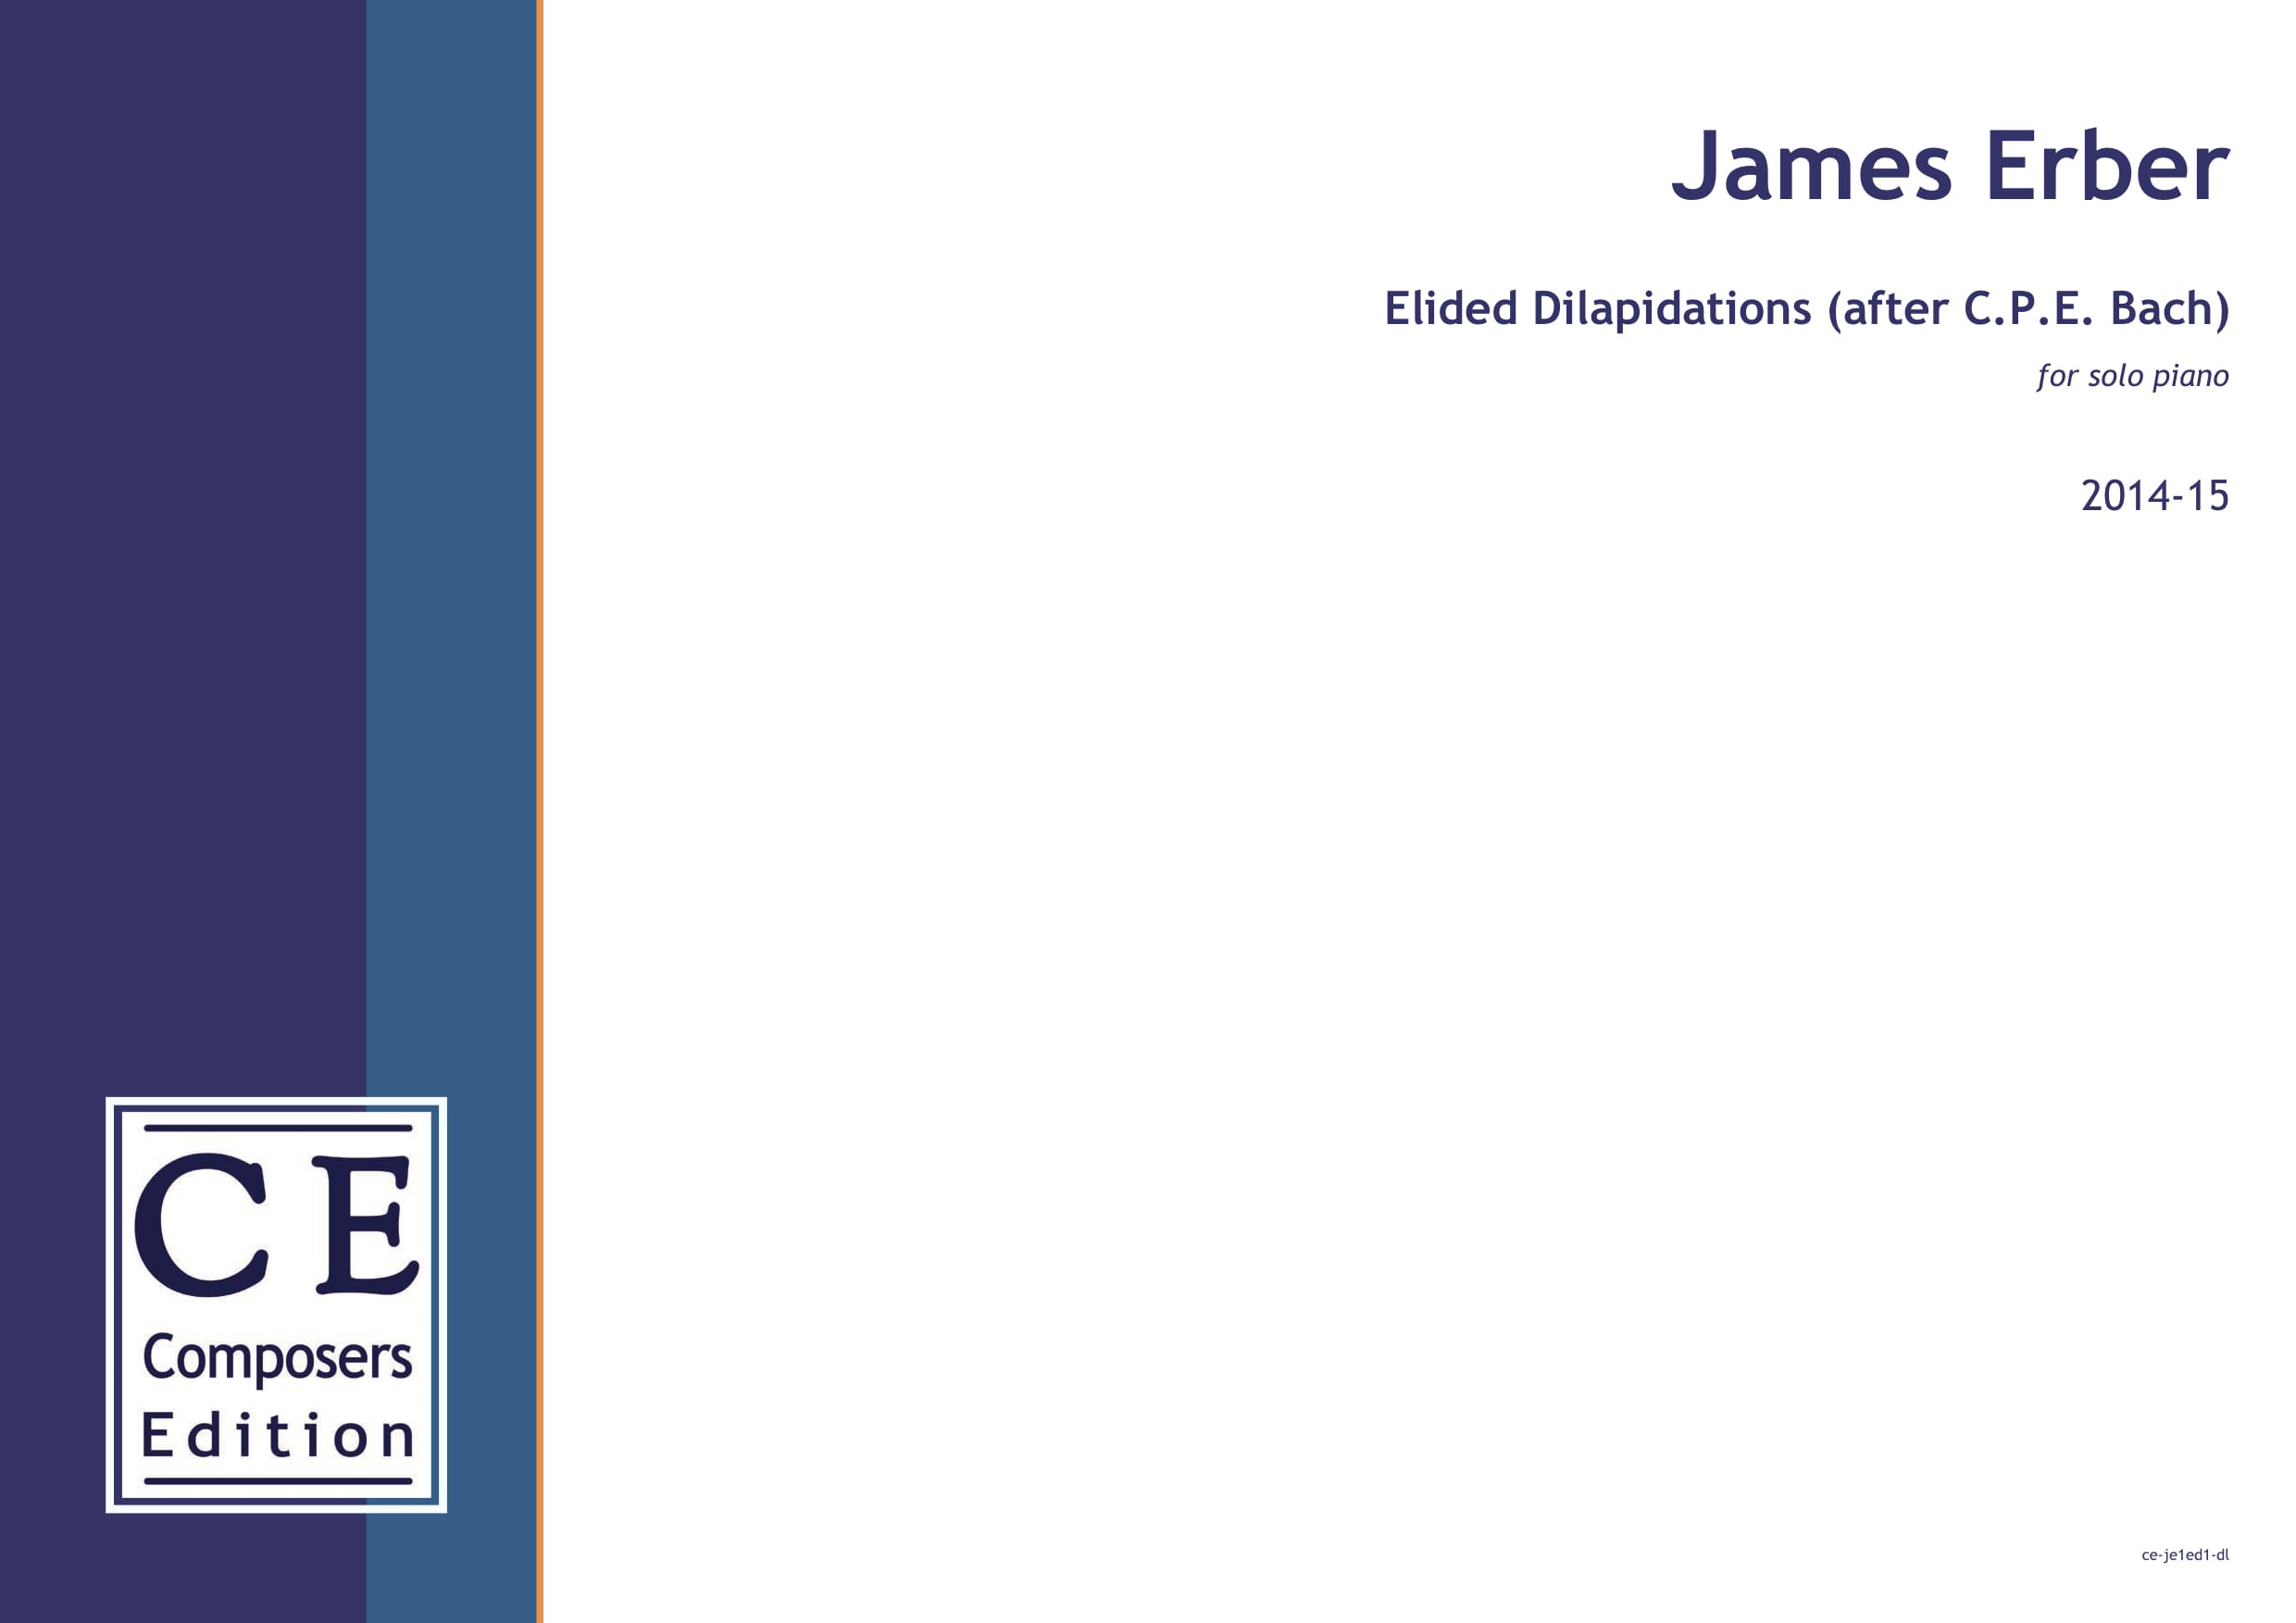 James Erber: Elided Dilapidations (after C.P.E. Bach) for solo piano